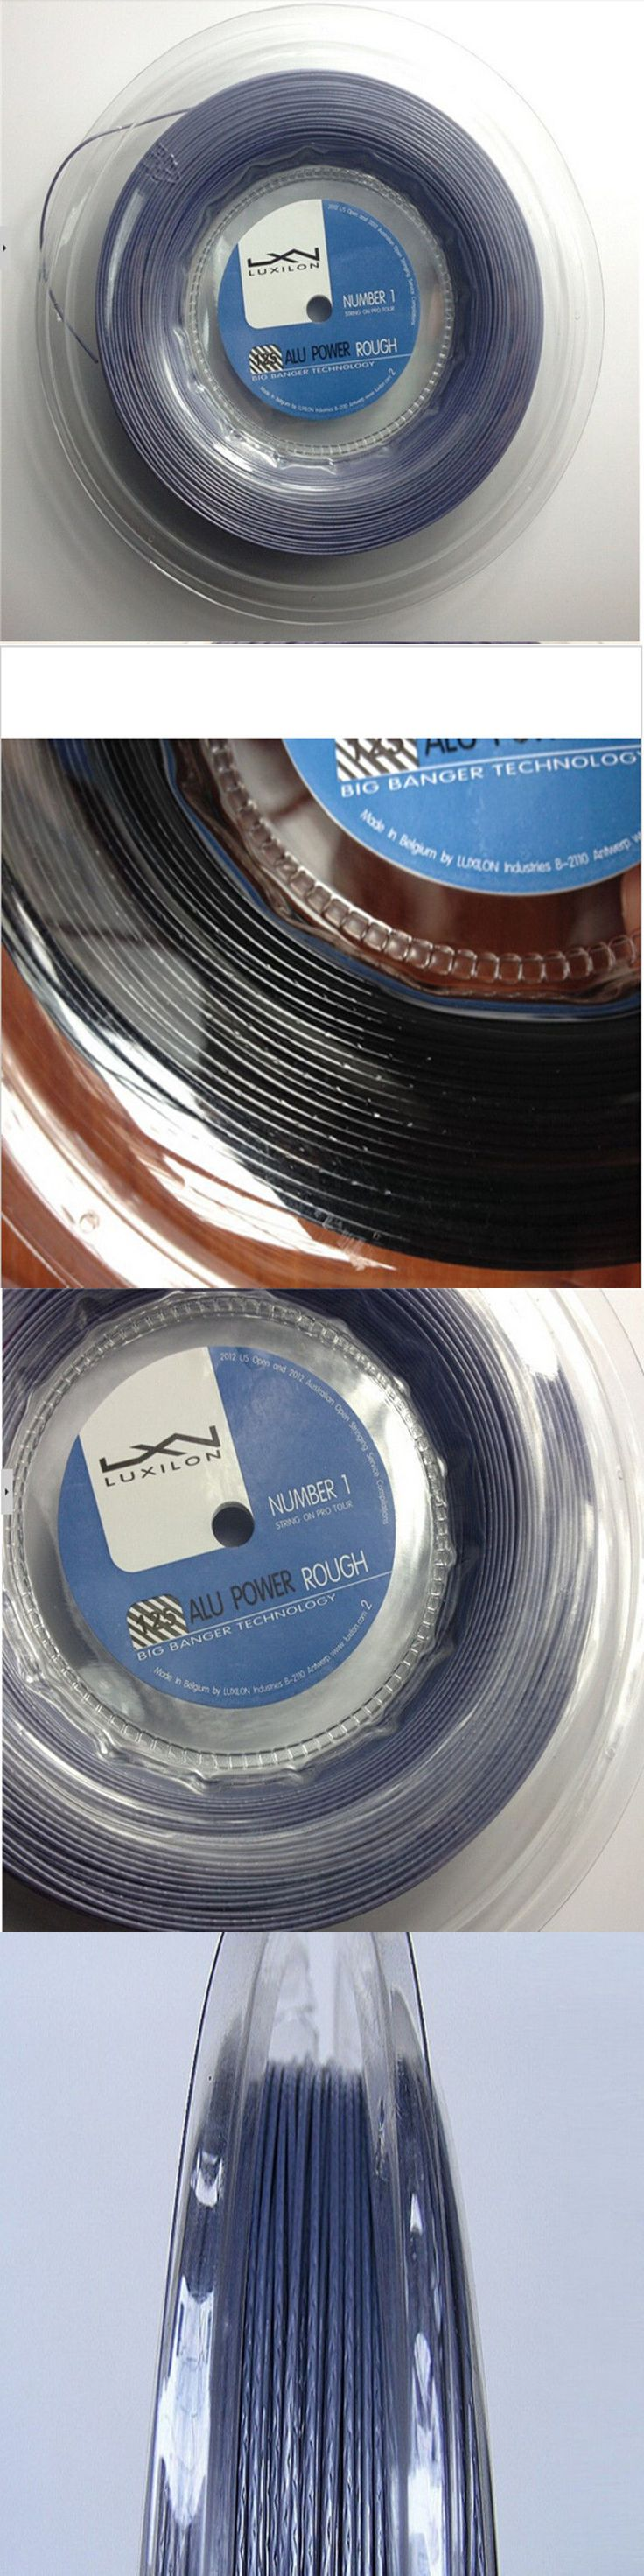 Strings 13343: 200M Reel Without Printing Rough Power Luxilon Tennis String ,660Ft:Silver -> BUY IT NOW ONLY: $45 on eBay!